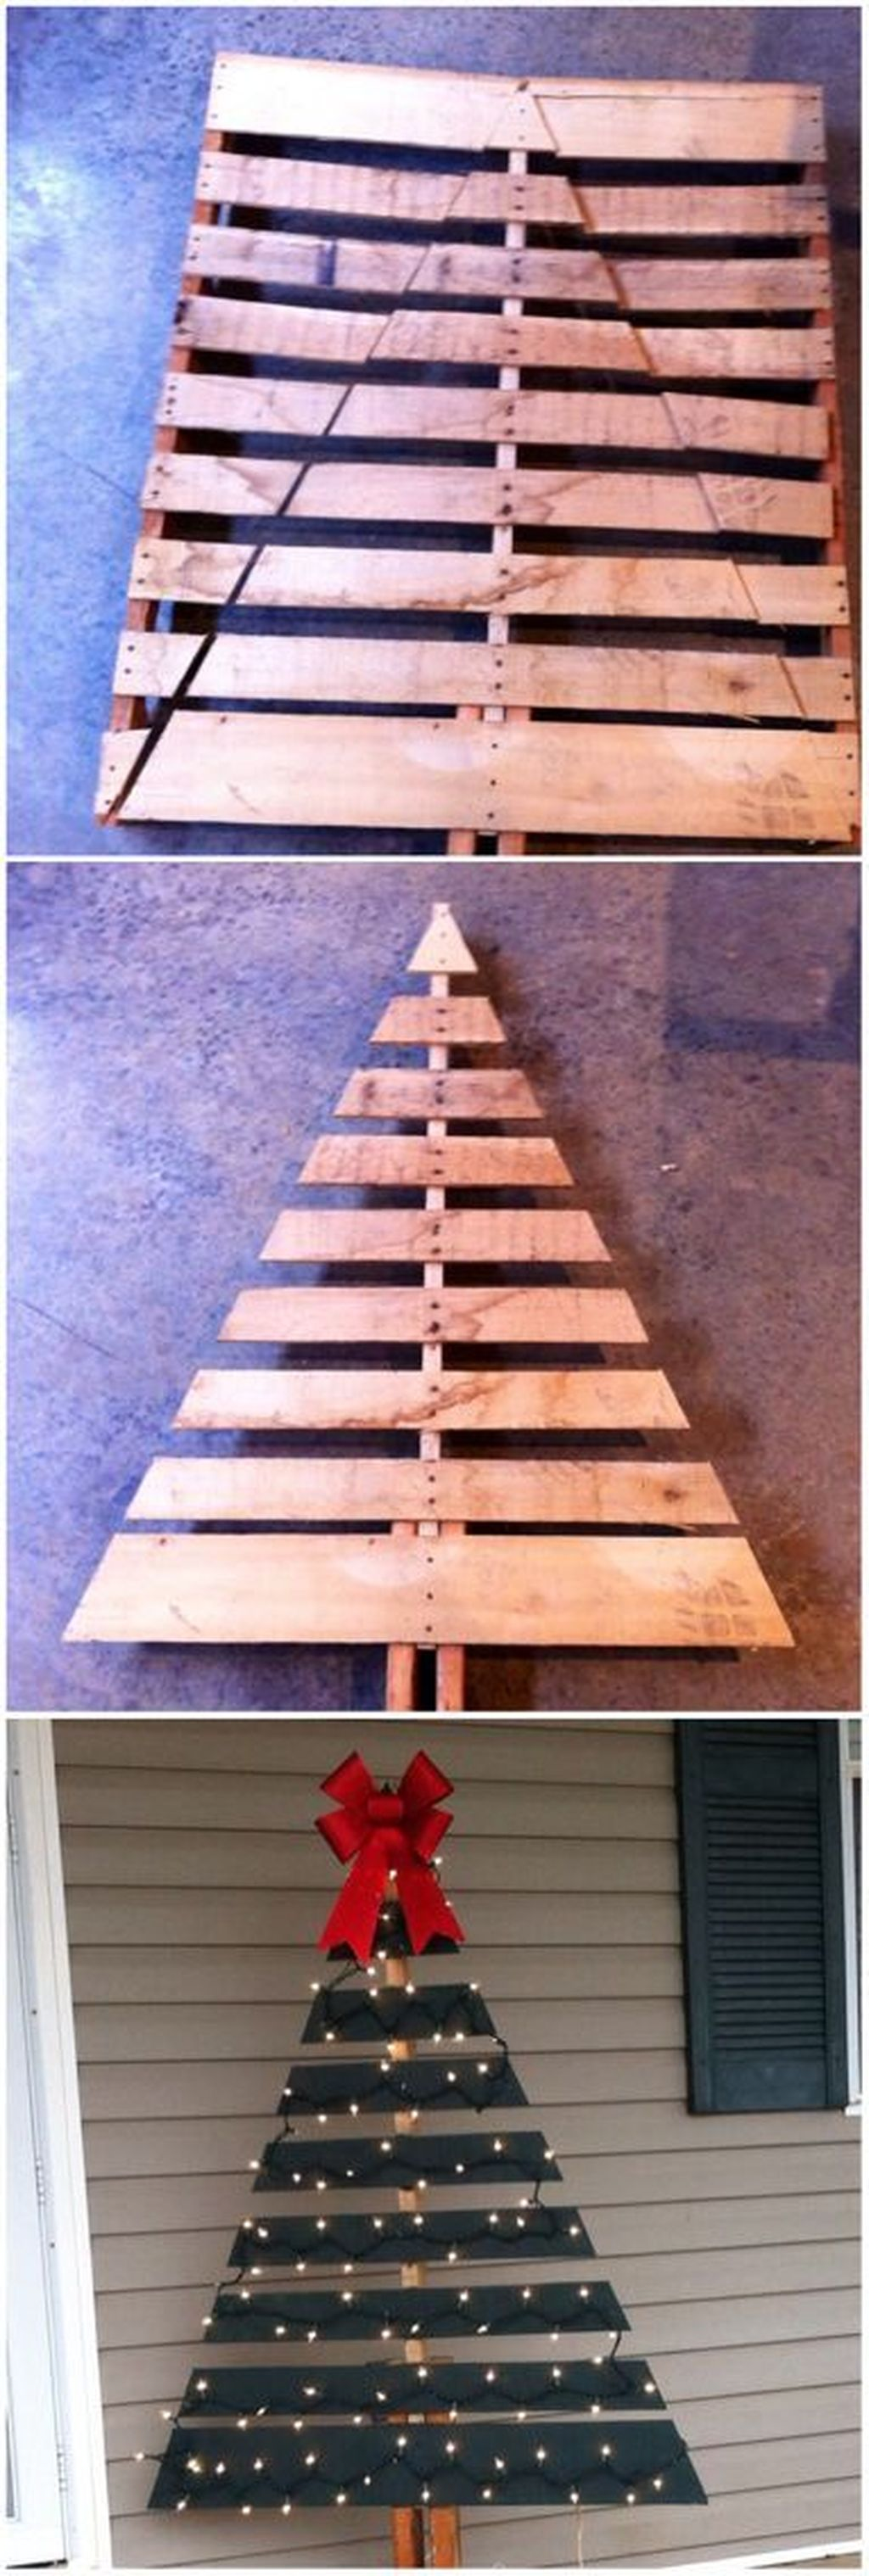 Easy And Creative DIY Christmas Tree Design Ideas You Can Try As Alternatives 64